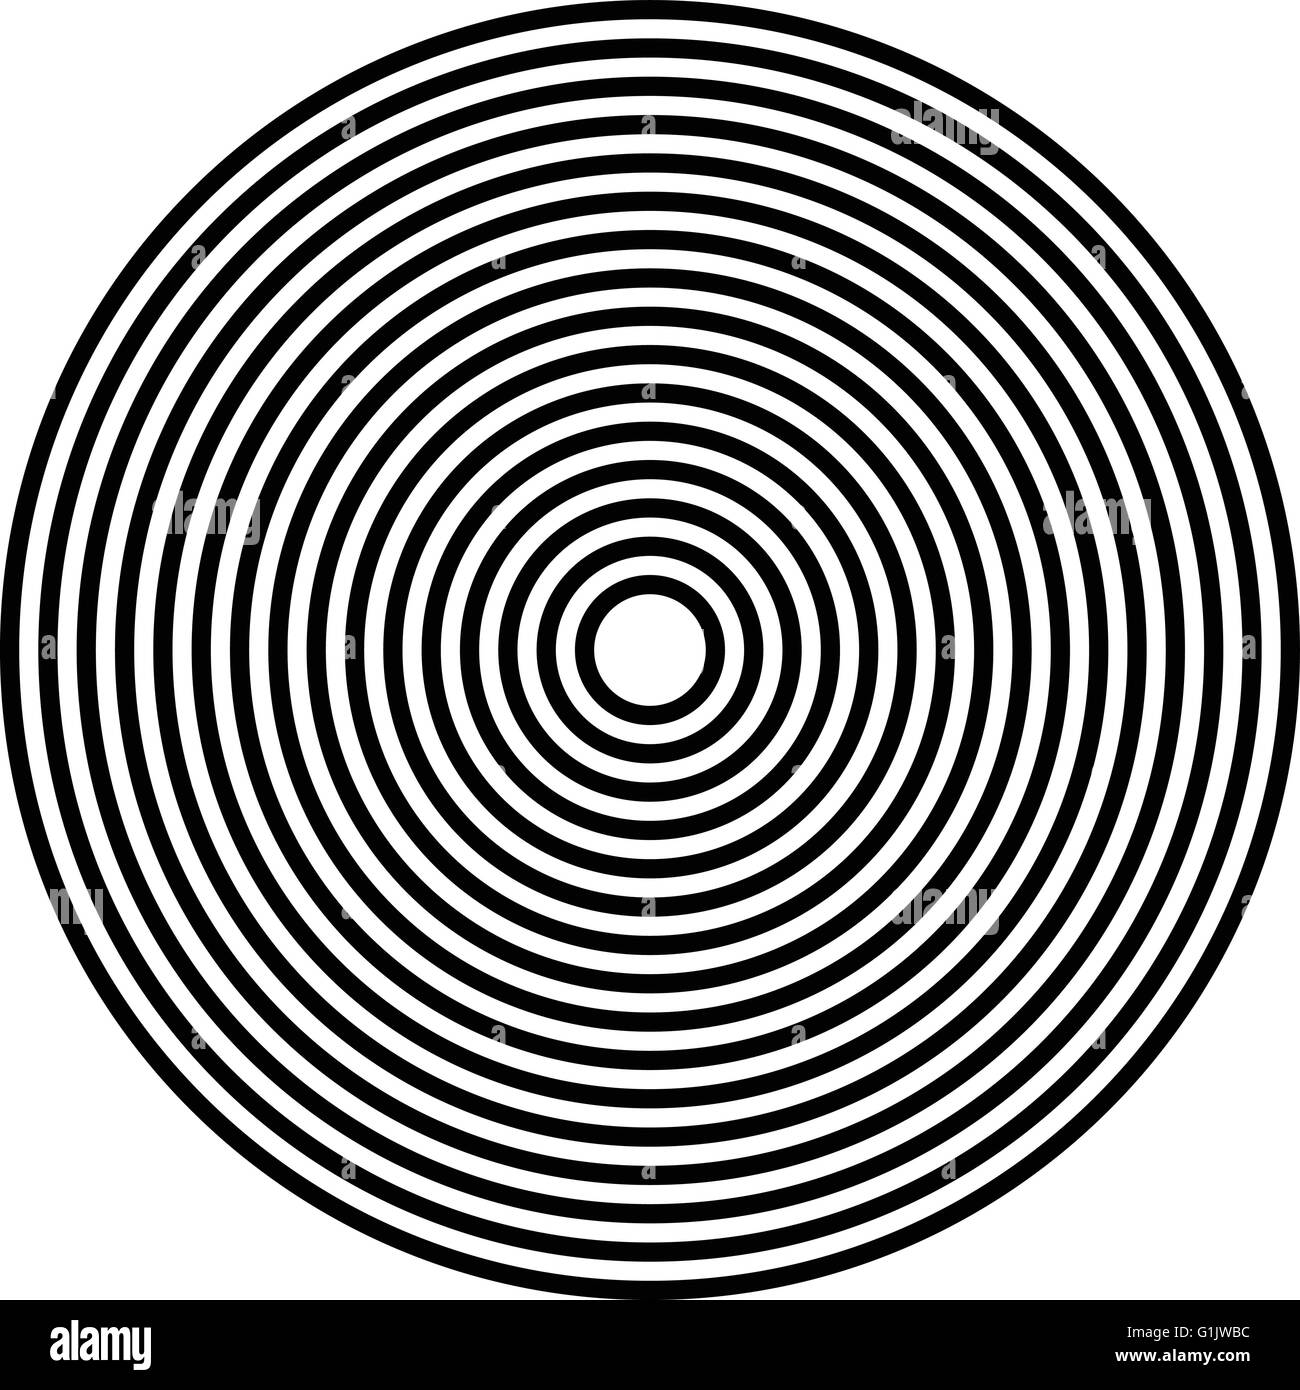 Simple concentric, radiating circle graphics isolated on white ...